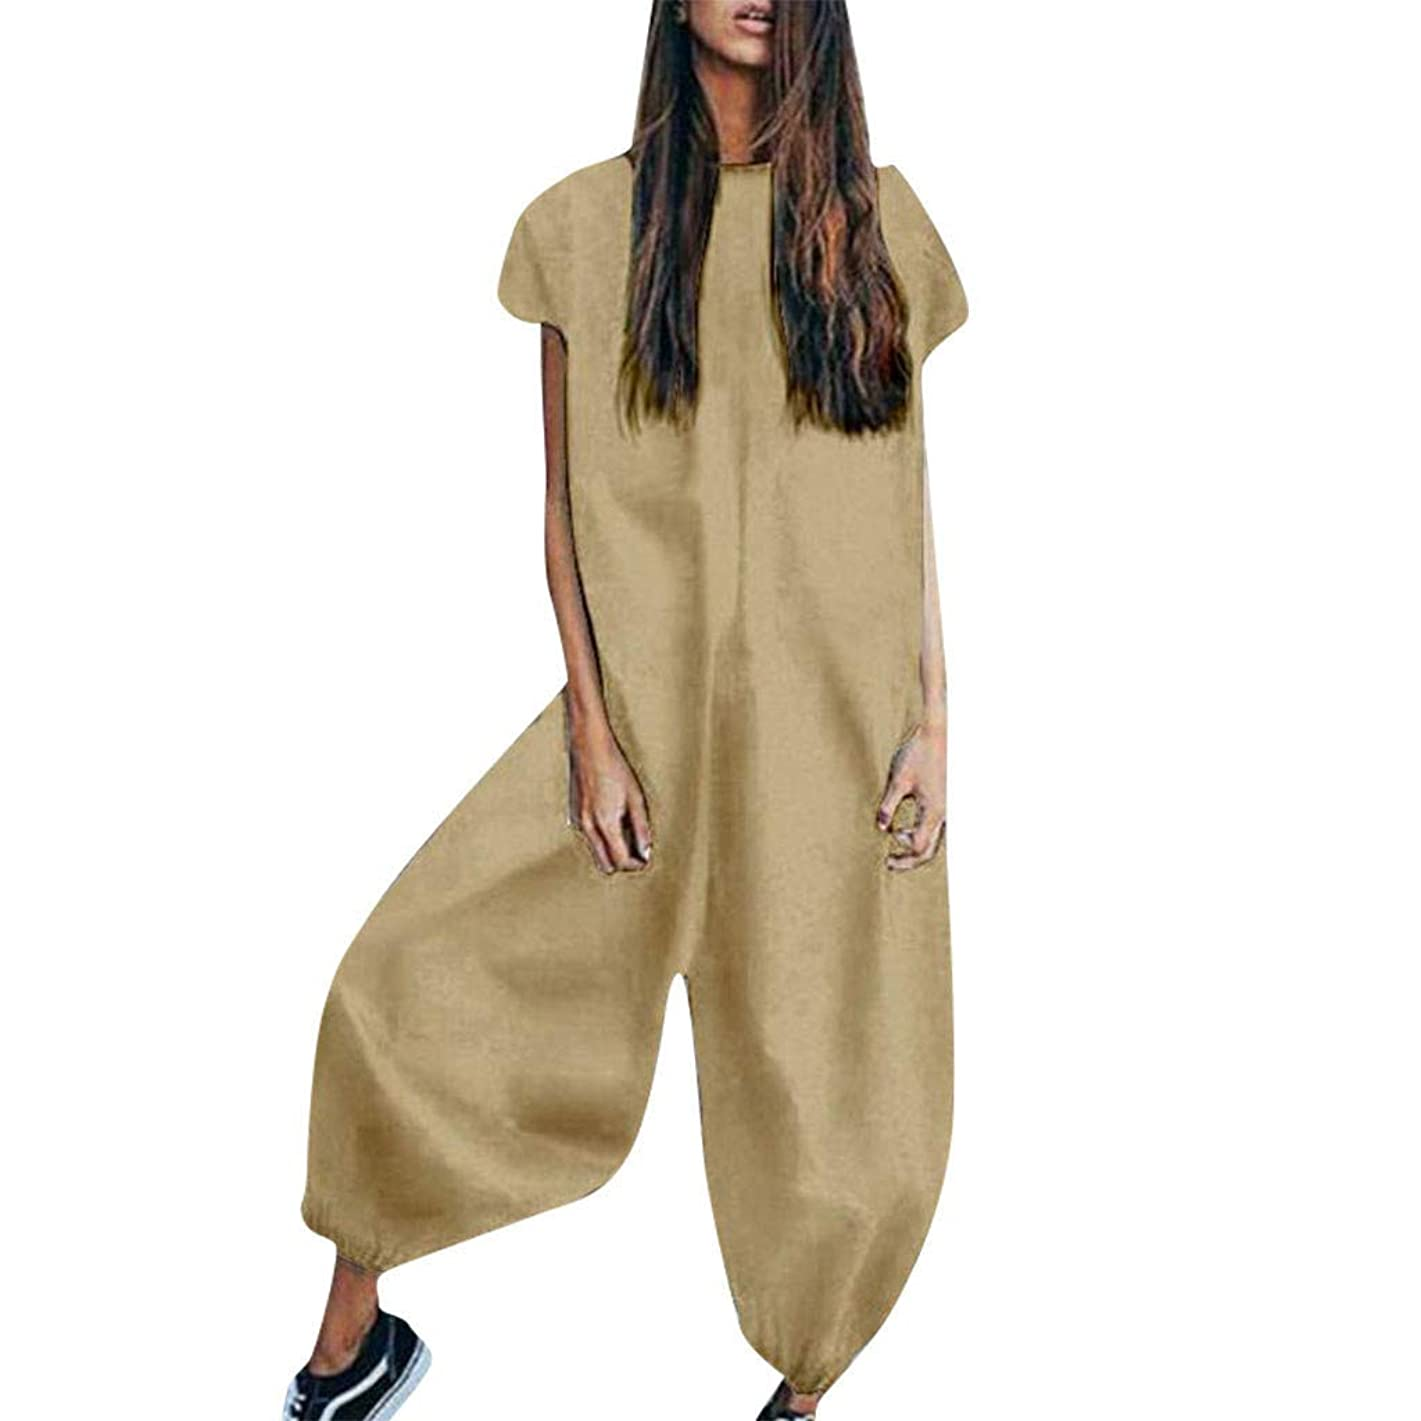 ZQISHMAO Women's Jumpsuits Loose Wide Leg Pants Solid Color Jumpsuit Romper with Pockets